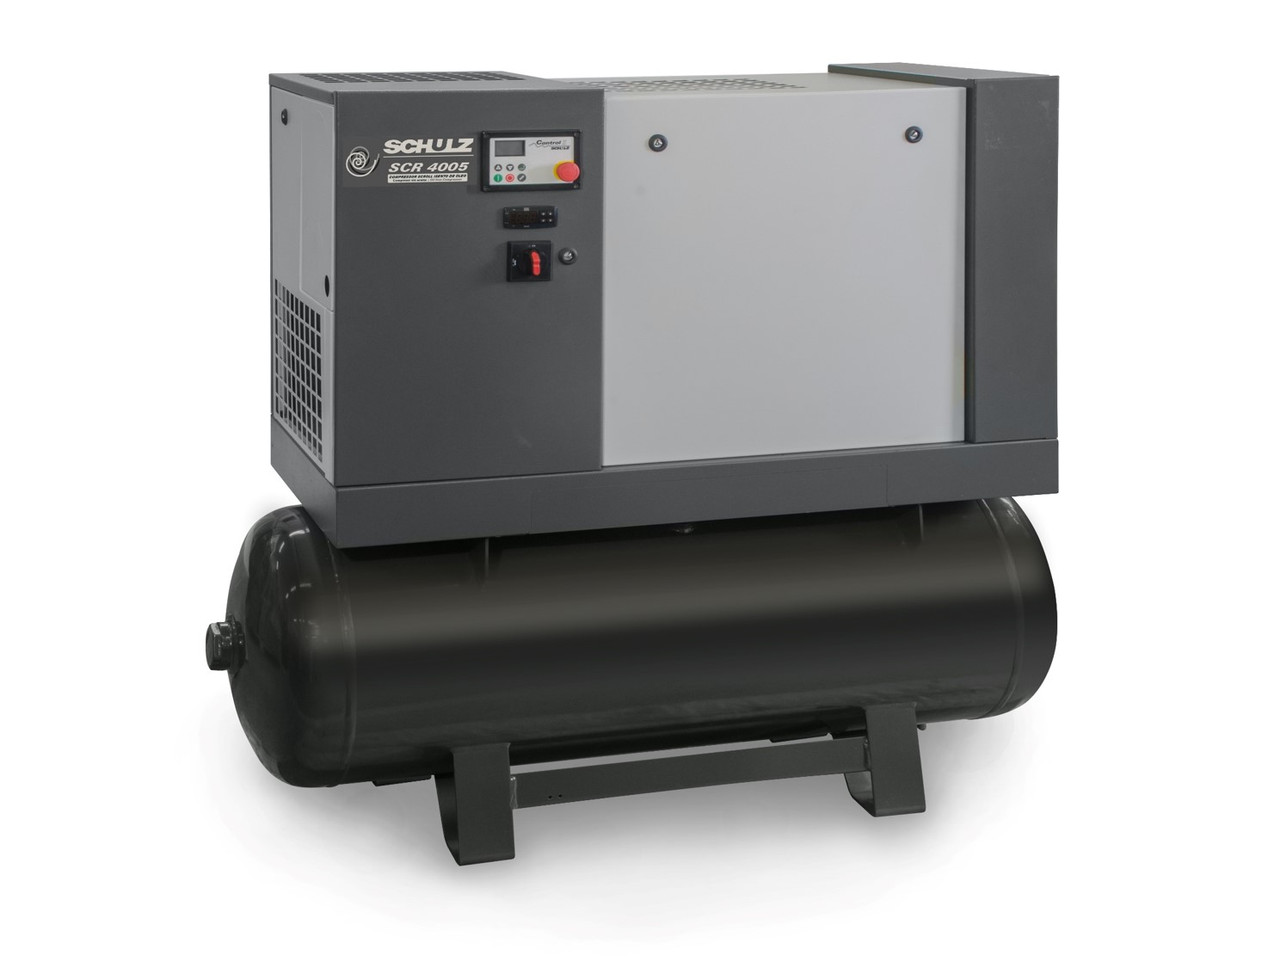 Schulz SCR 4005 TS Oil Free Scroll Air Compressor - 5 HP 208-230 Volt Three Phase, 60 Gallon Horizontal Tank with Pre-Filter and Dryer